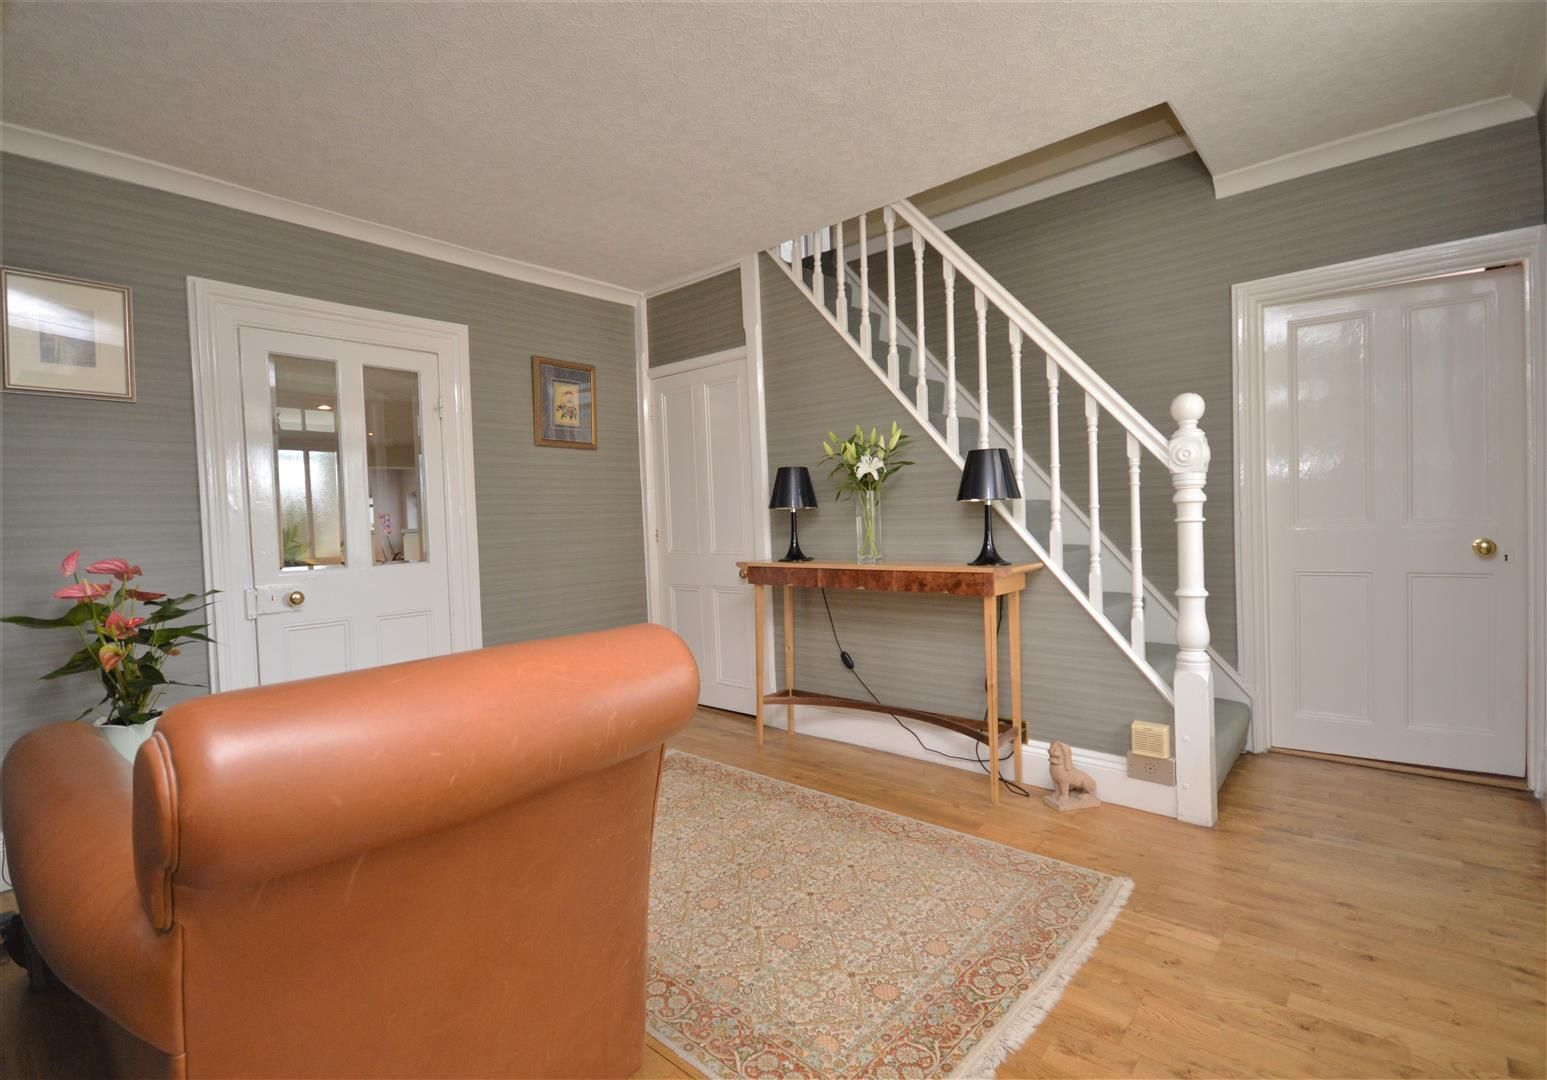 5 bed detached for sale in Stretton Sugwas  - Property Image 12